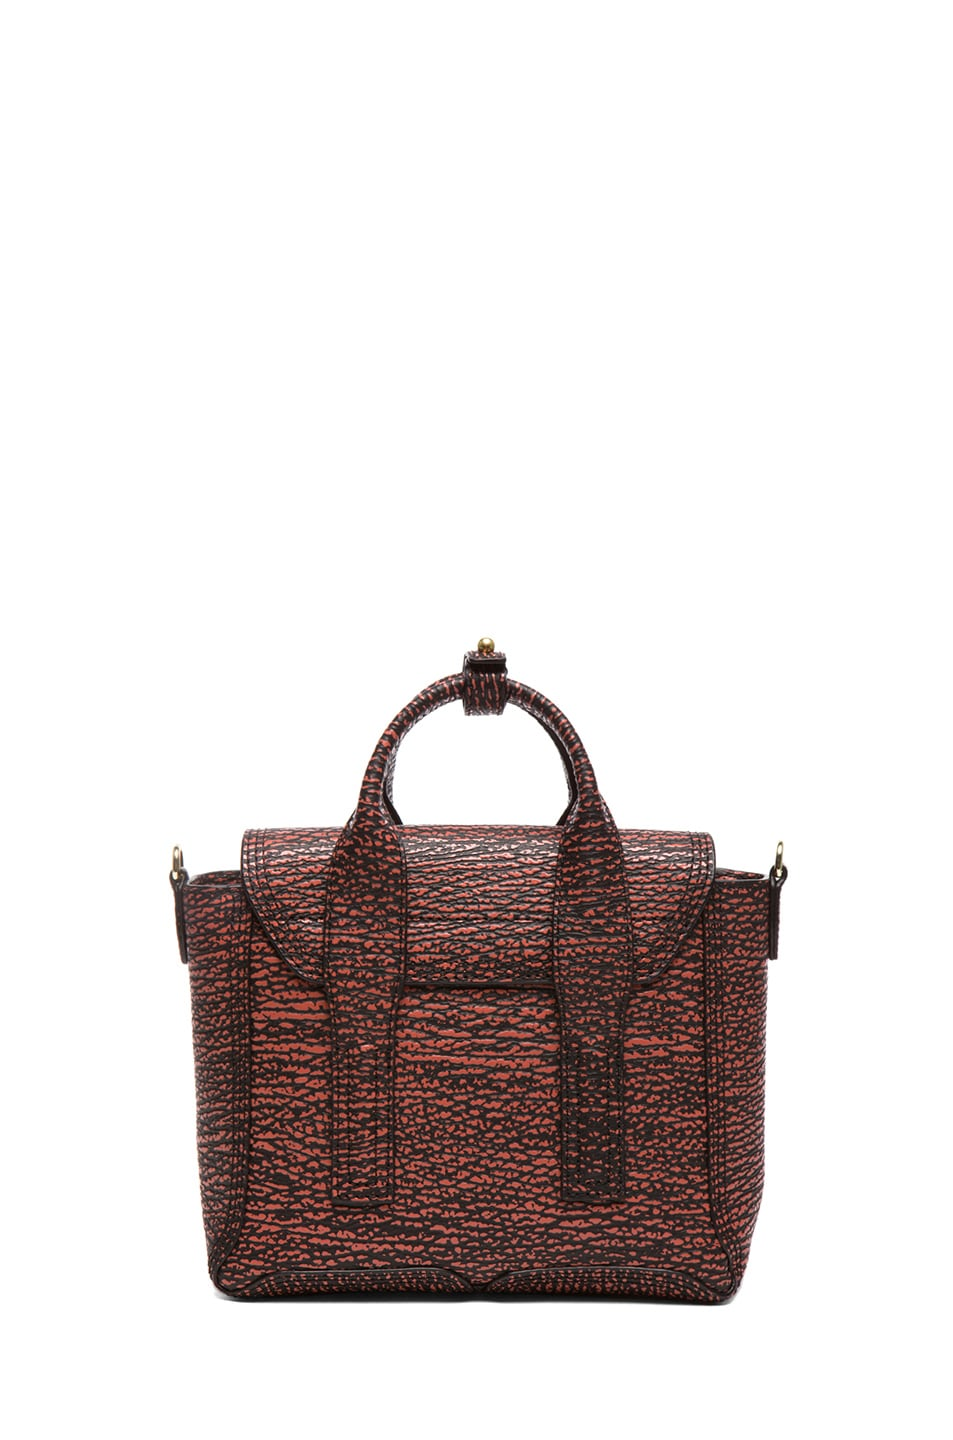 Image 2 of 3.1 phillip lim Mini Pashli Satchel in Black & Lava